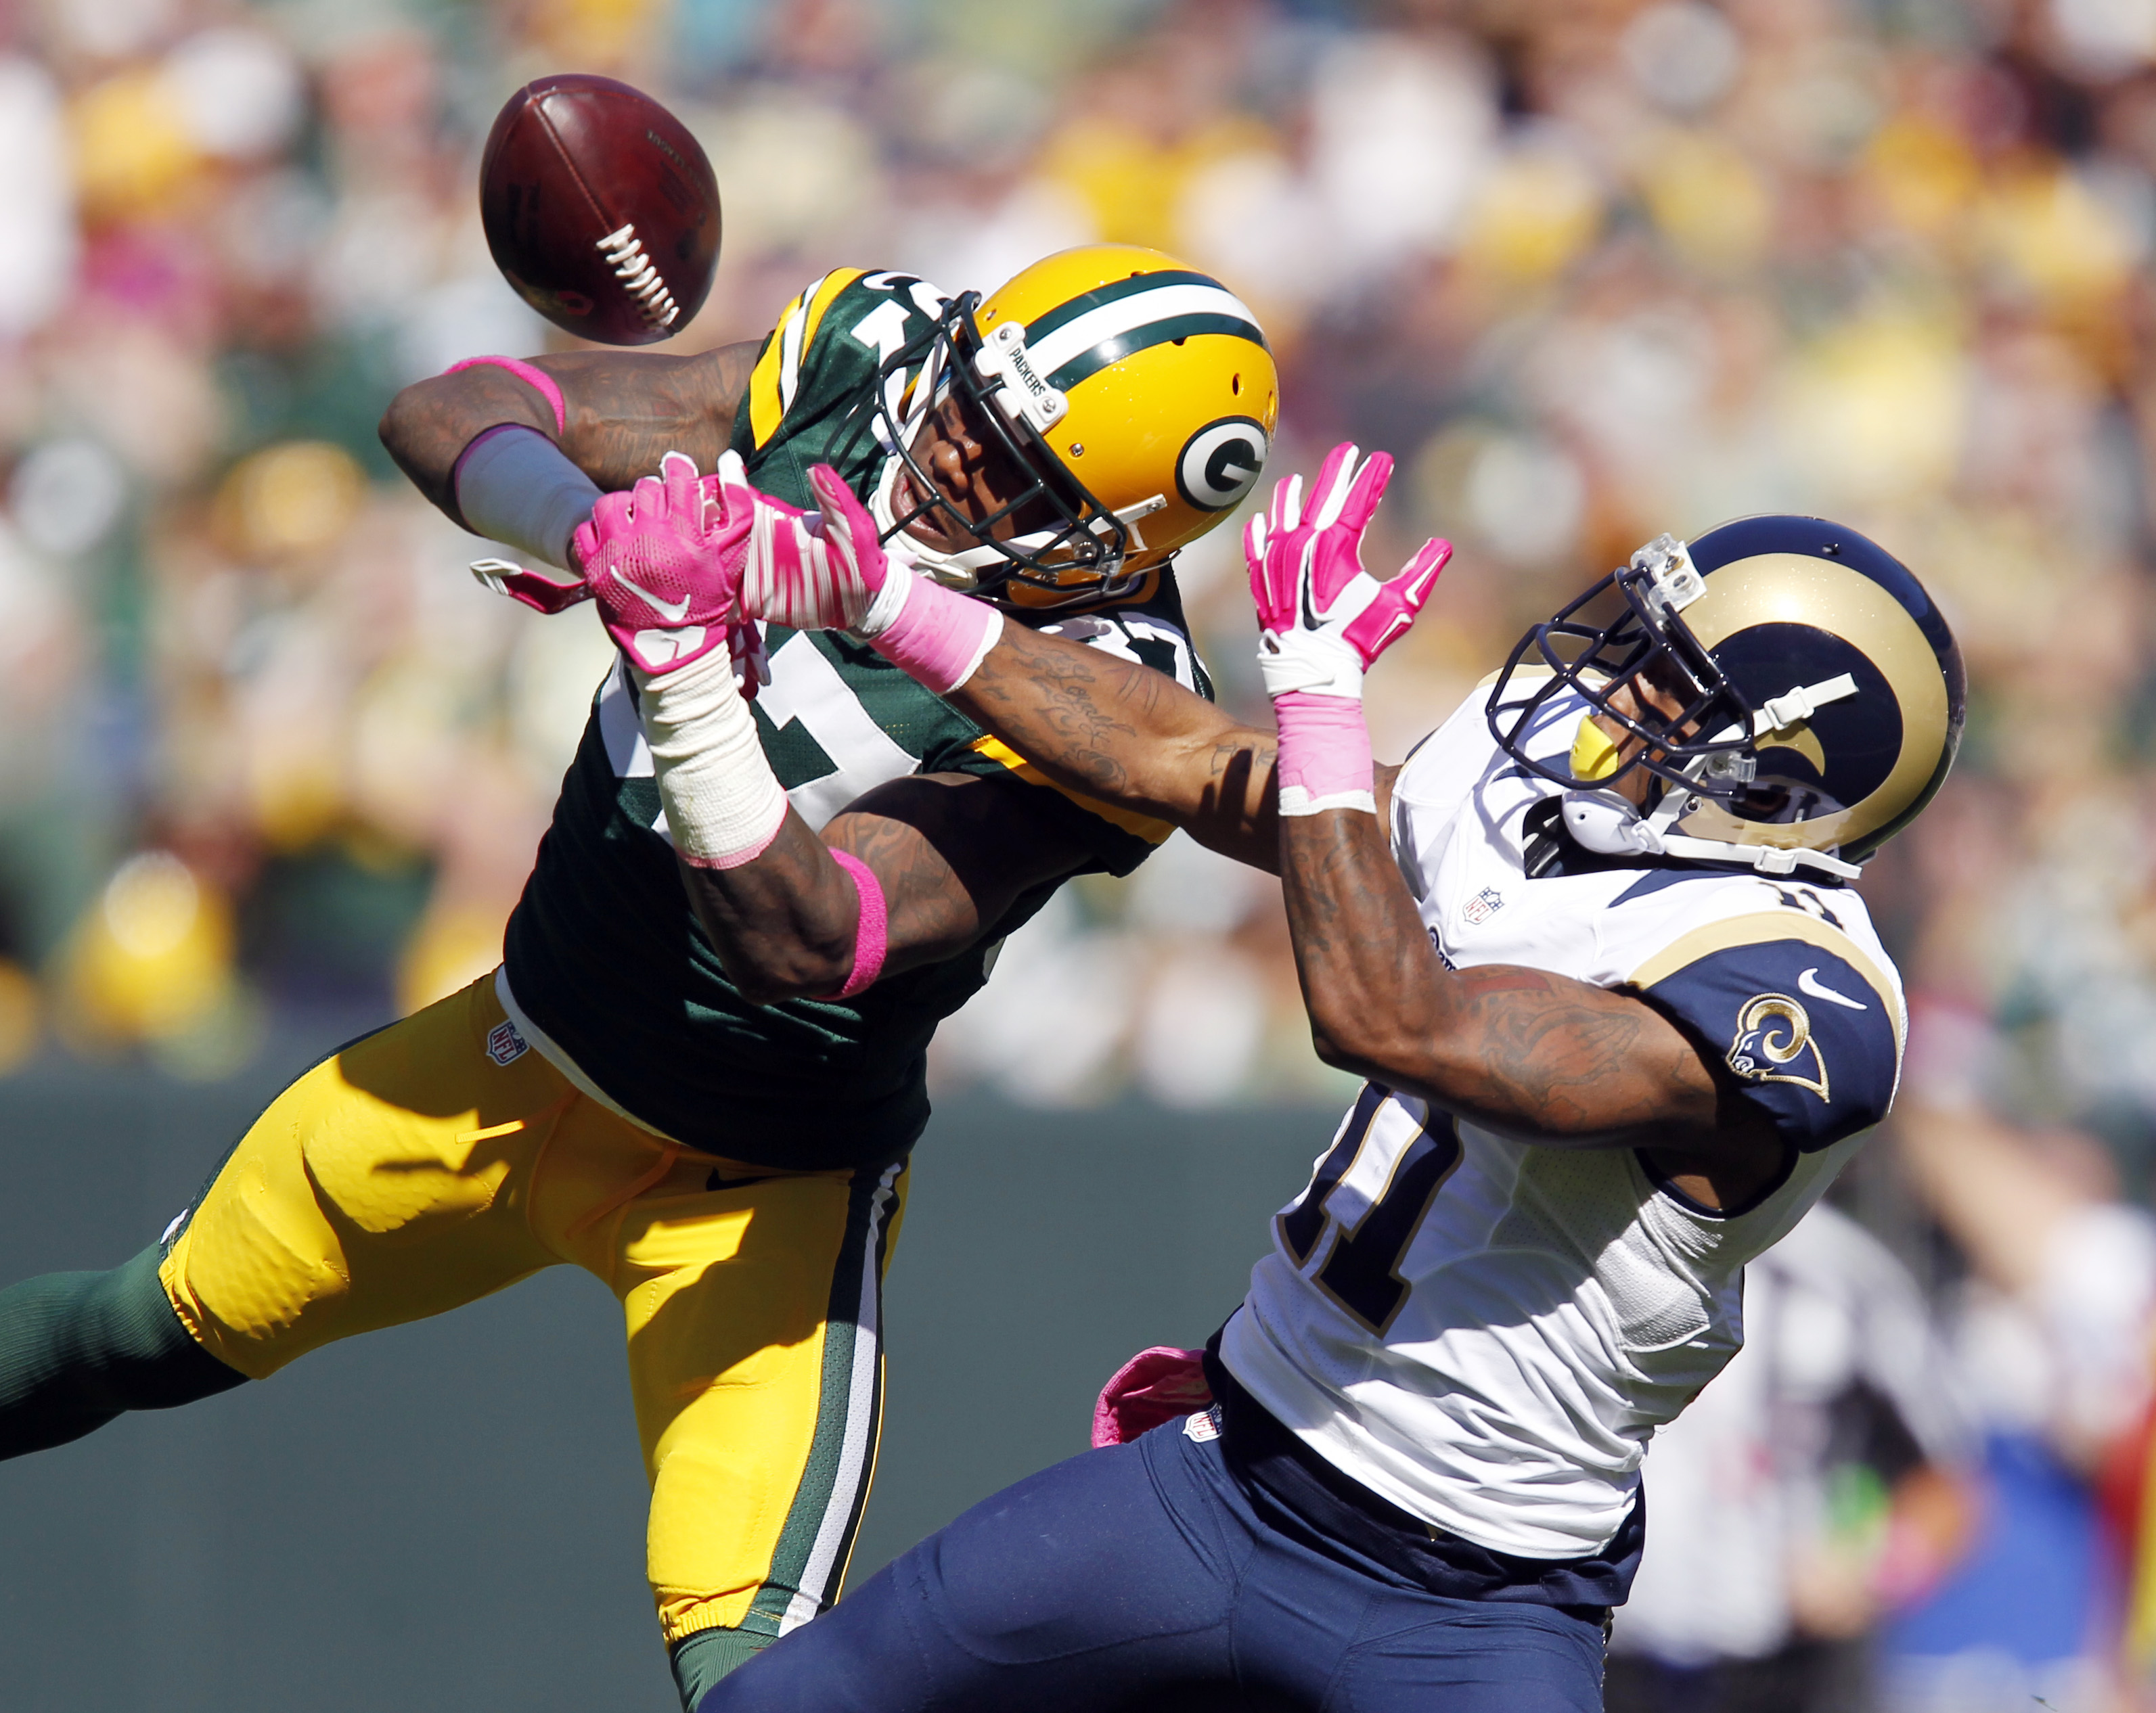 FILE - In this Oct. 11, 2015, file photo, Green Bay Packers' Sam Shields breaks up a pass intended for St. Louis Rams' Tavon Austin during the first half an NFL football game, in Green Bay, Wis. Cardinals quarterback Carson Palmer thinks he's got the fast